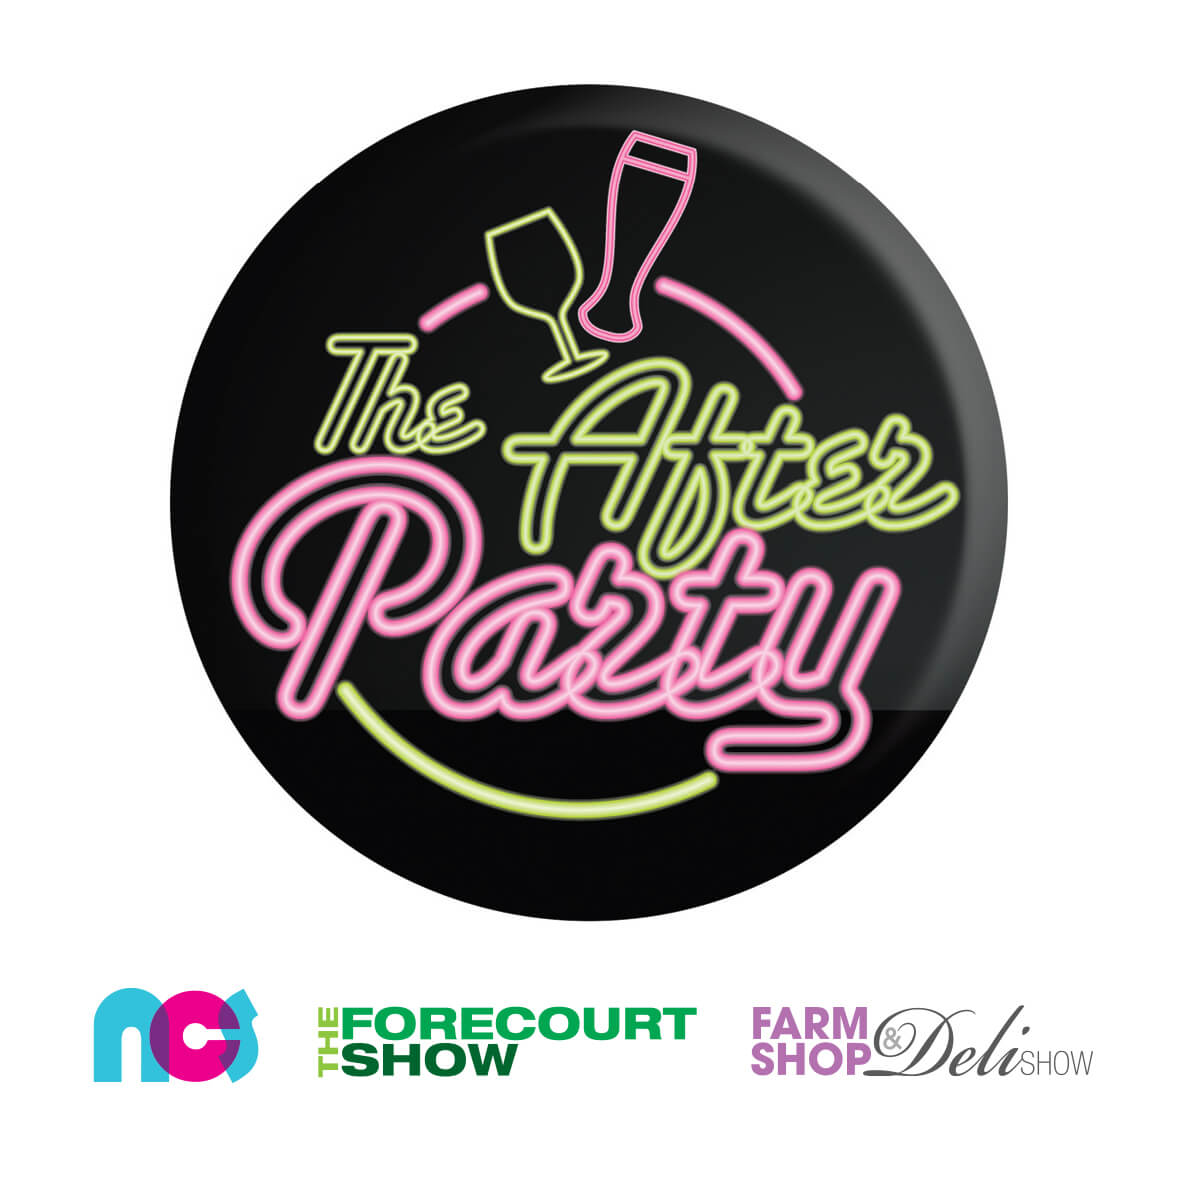 After party logo with show logos